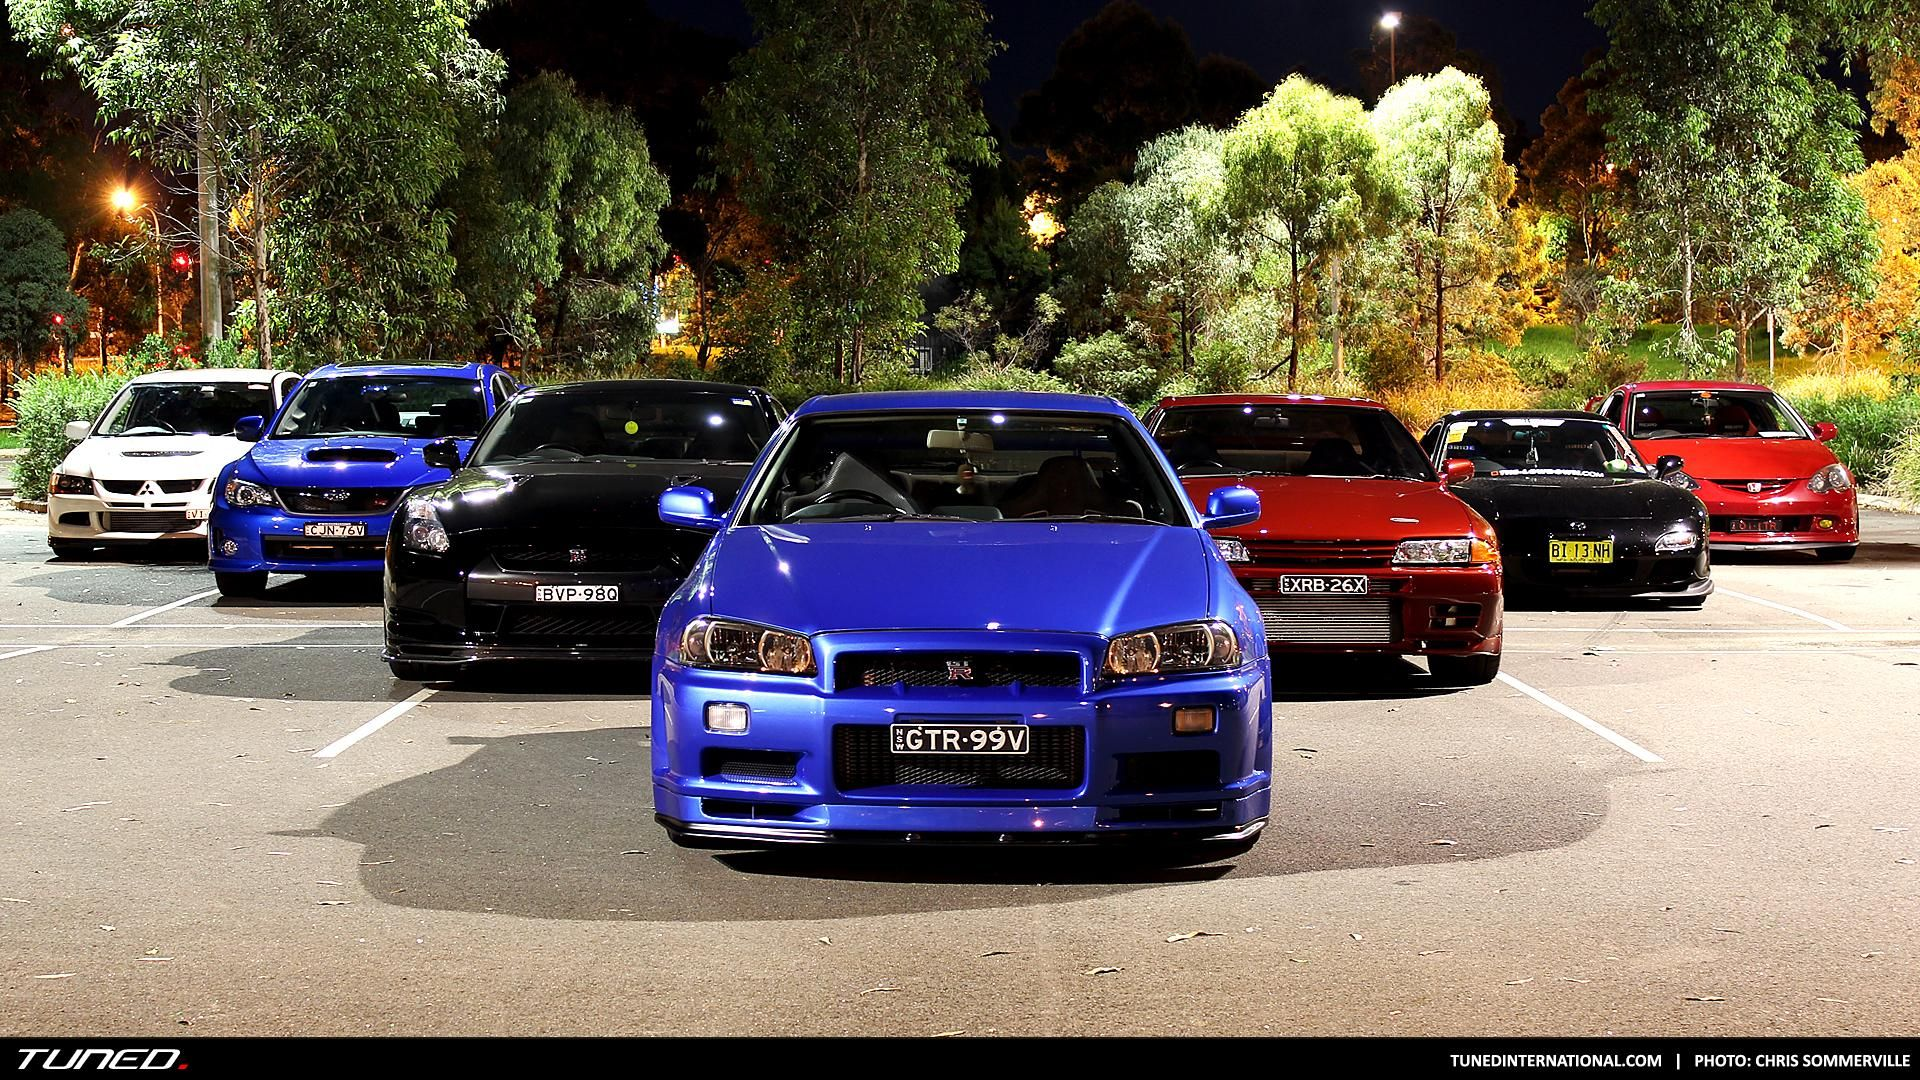 Tuned Cars wallpapers Free download latest Tuned Cars